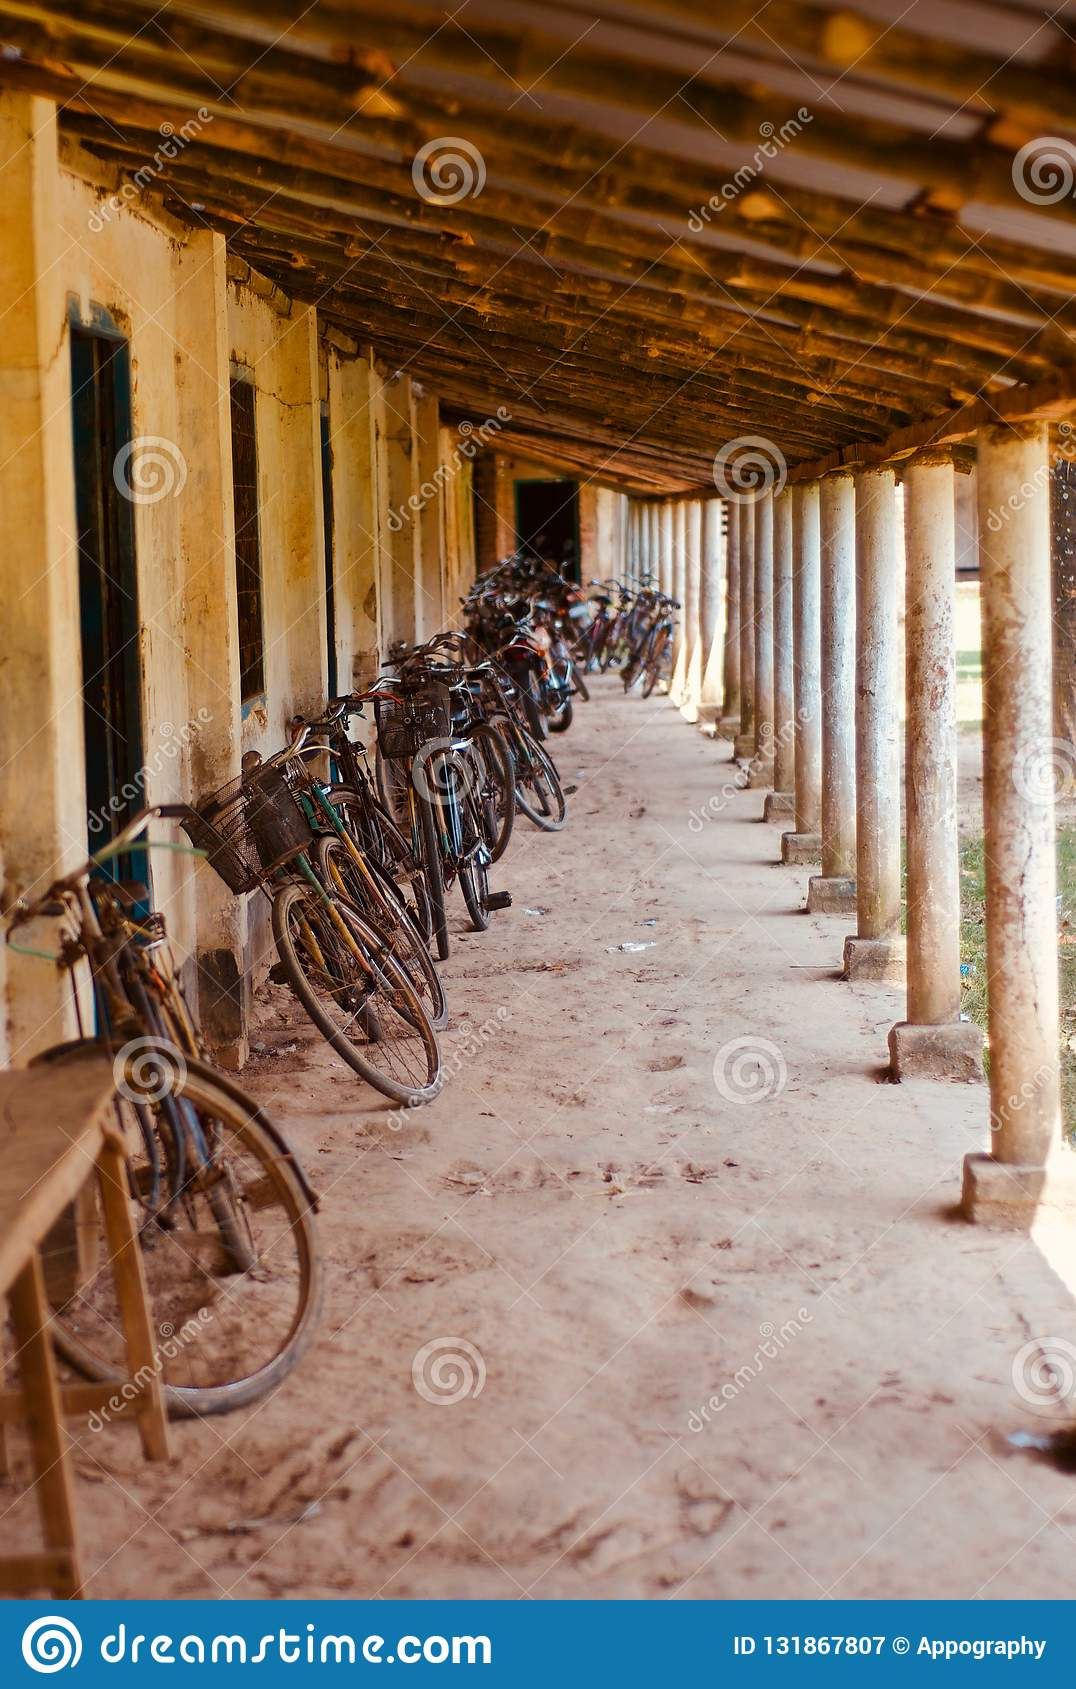 Bicycles parked around a corridor